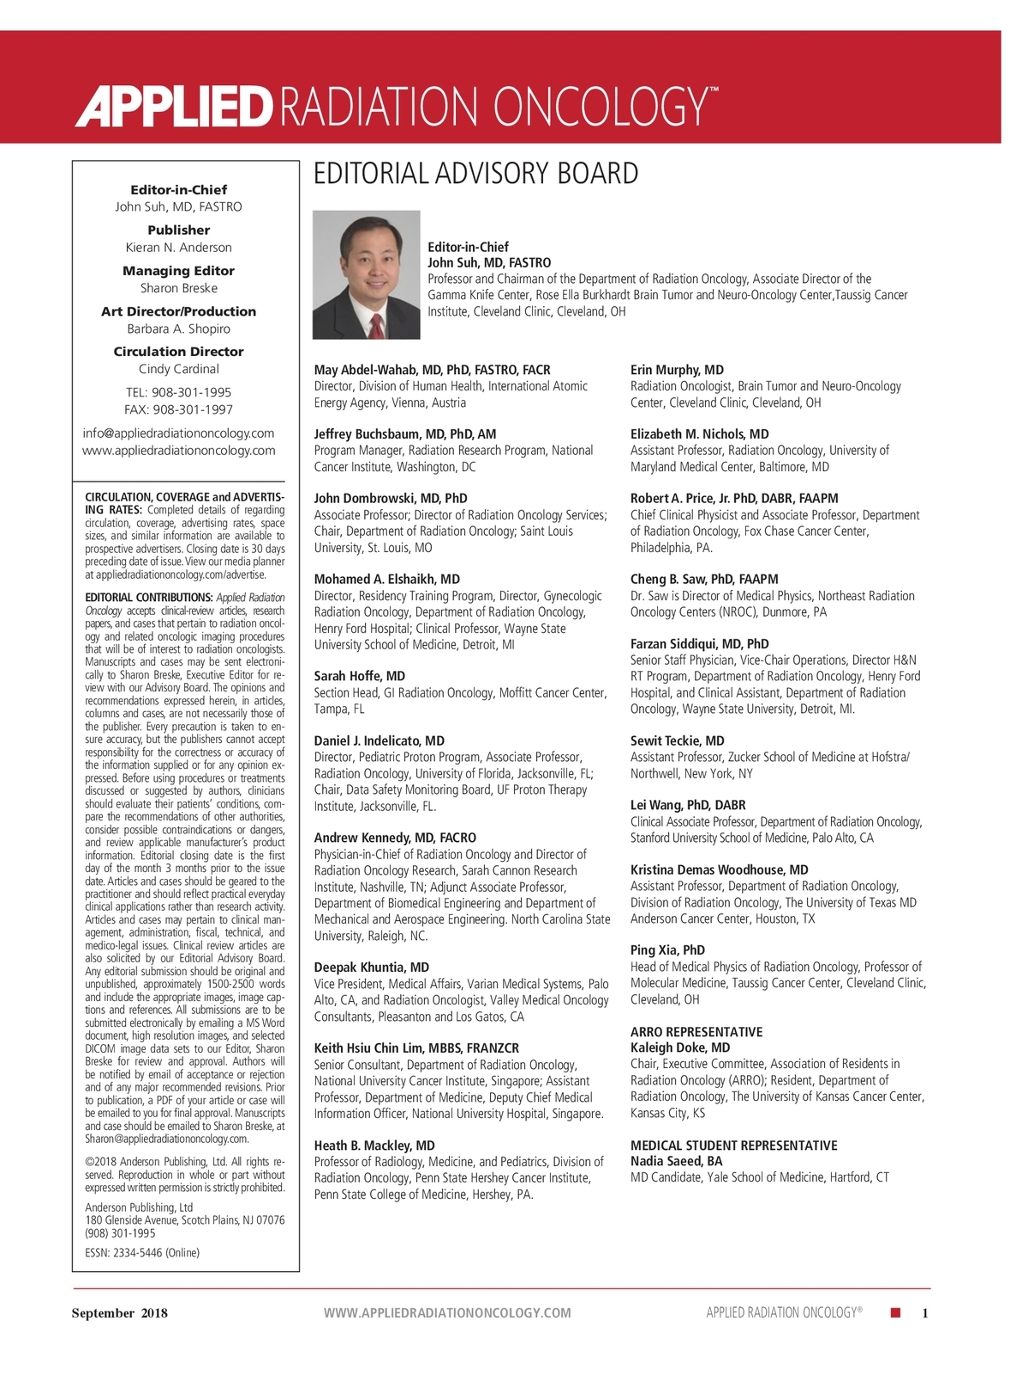 September 2018 Applied Radiation Oncology